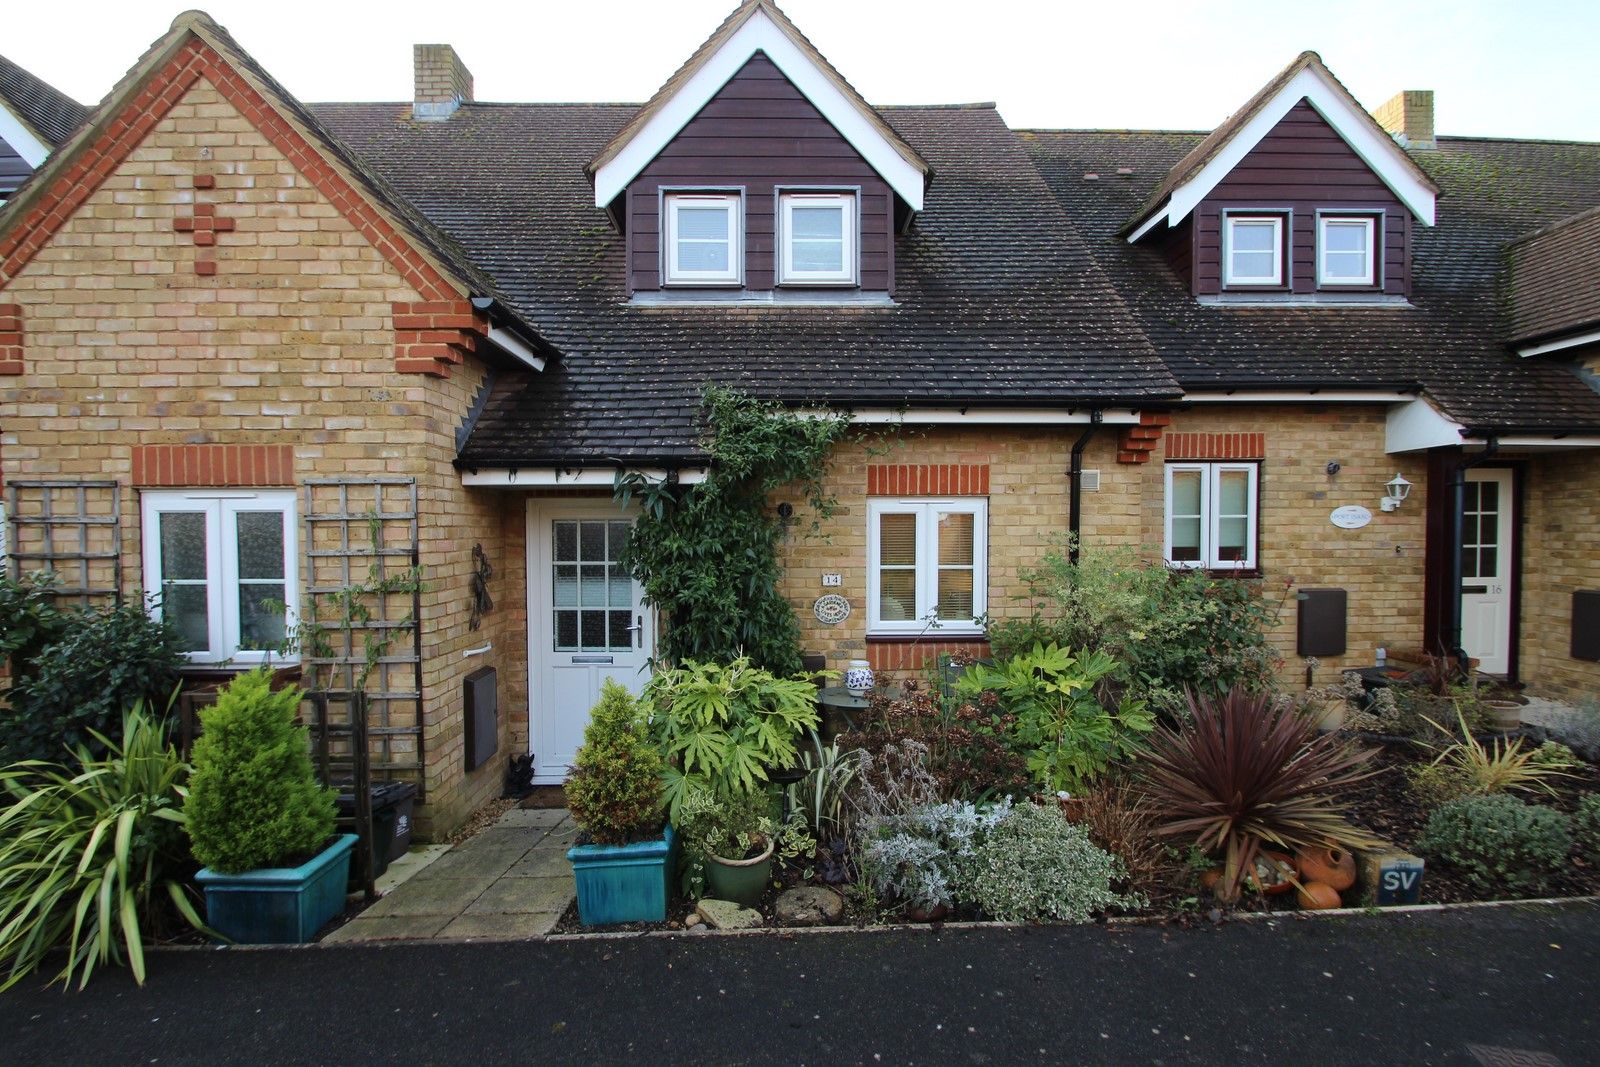 2 Bedroom Retirement Cottage in Mudeford